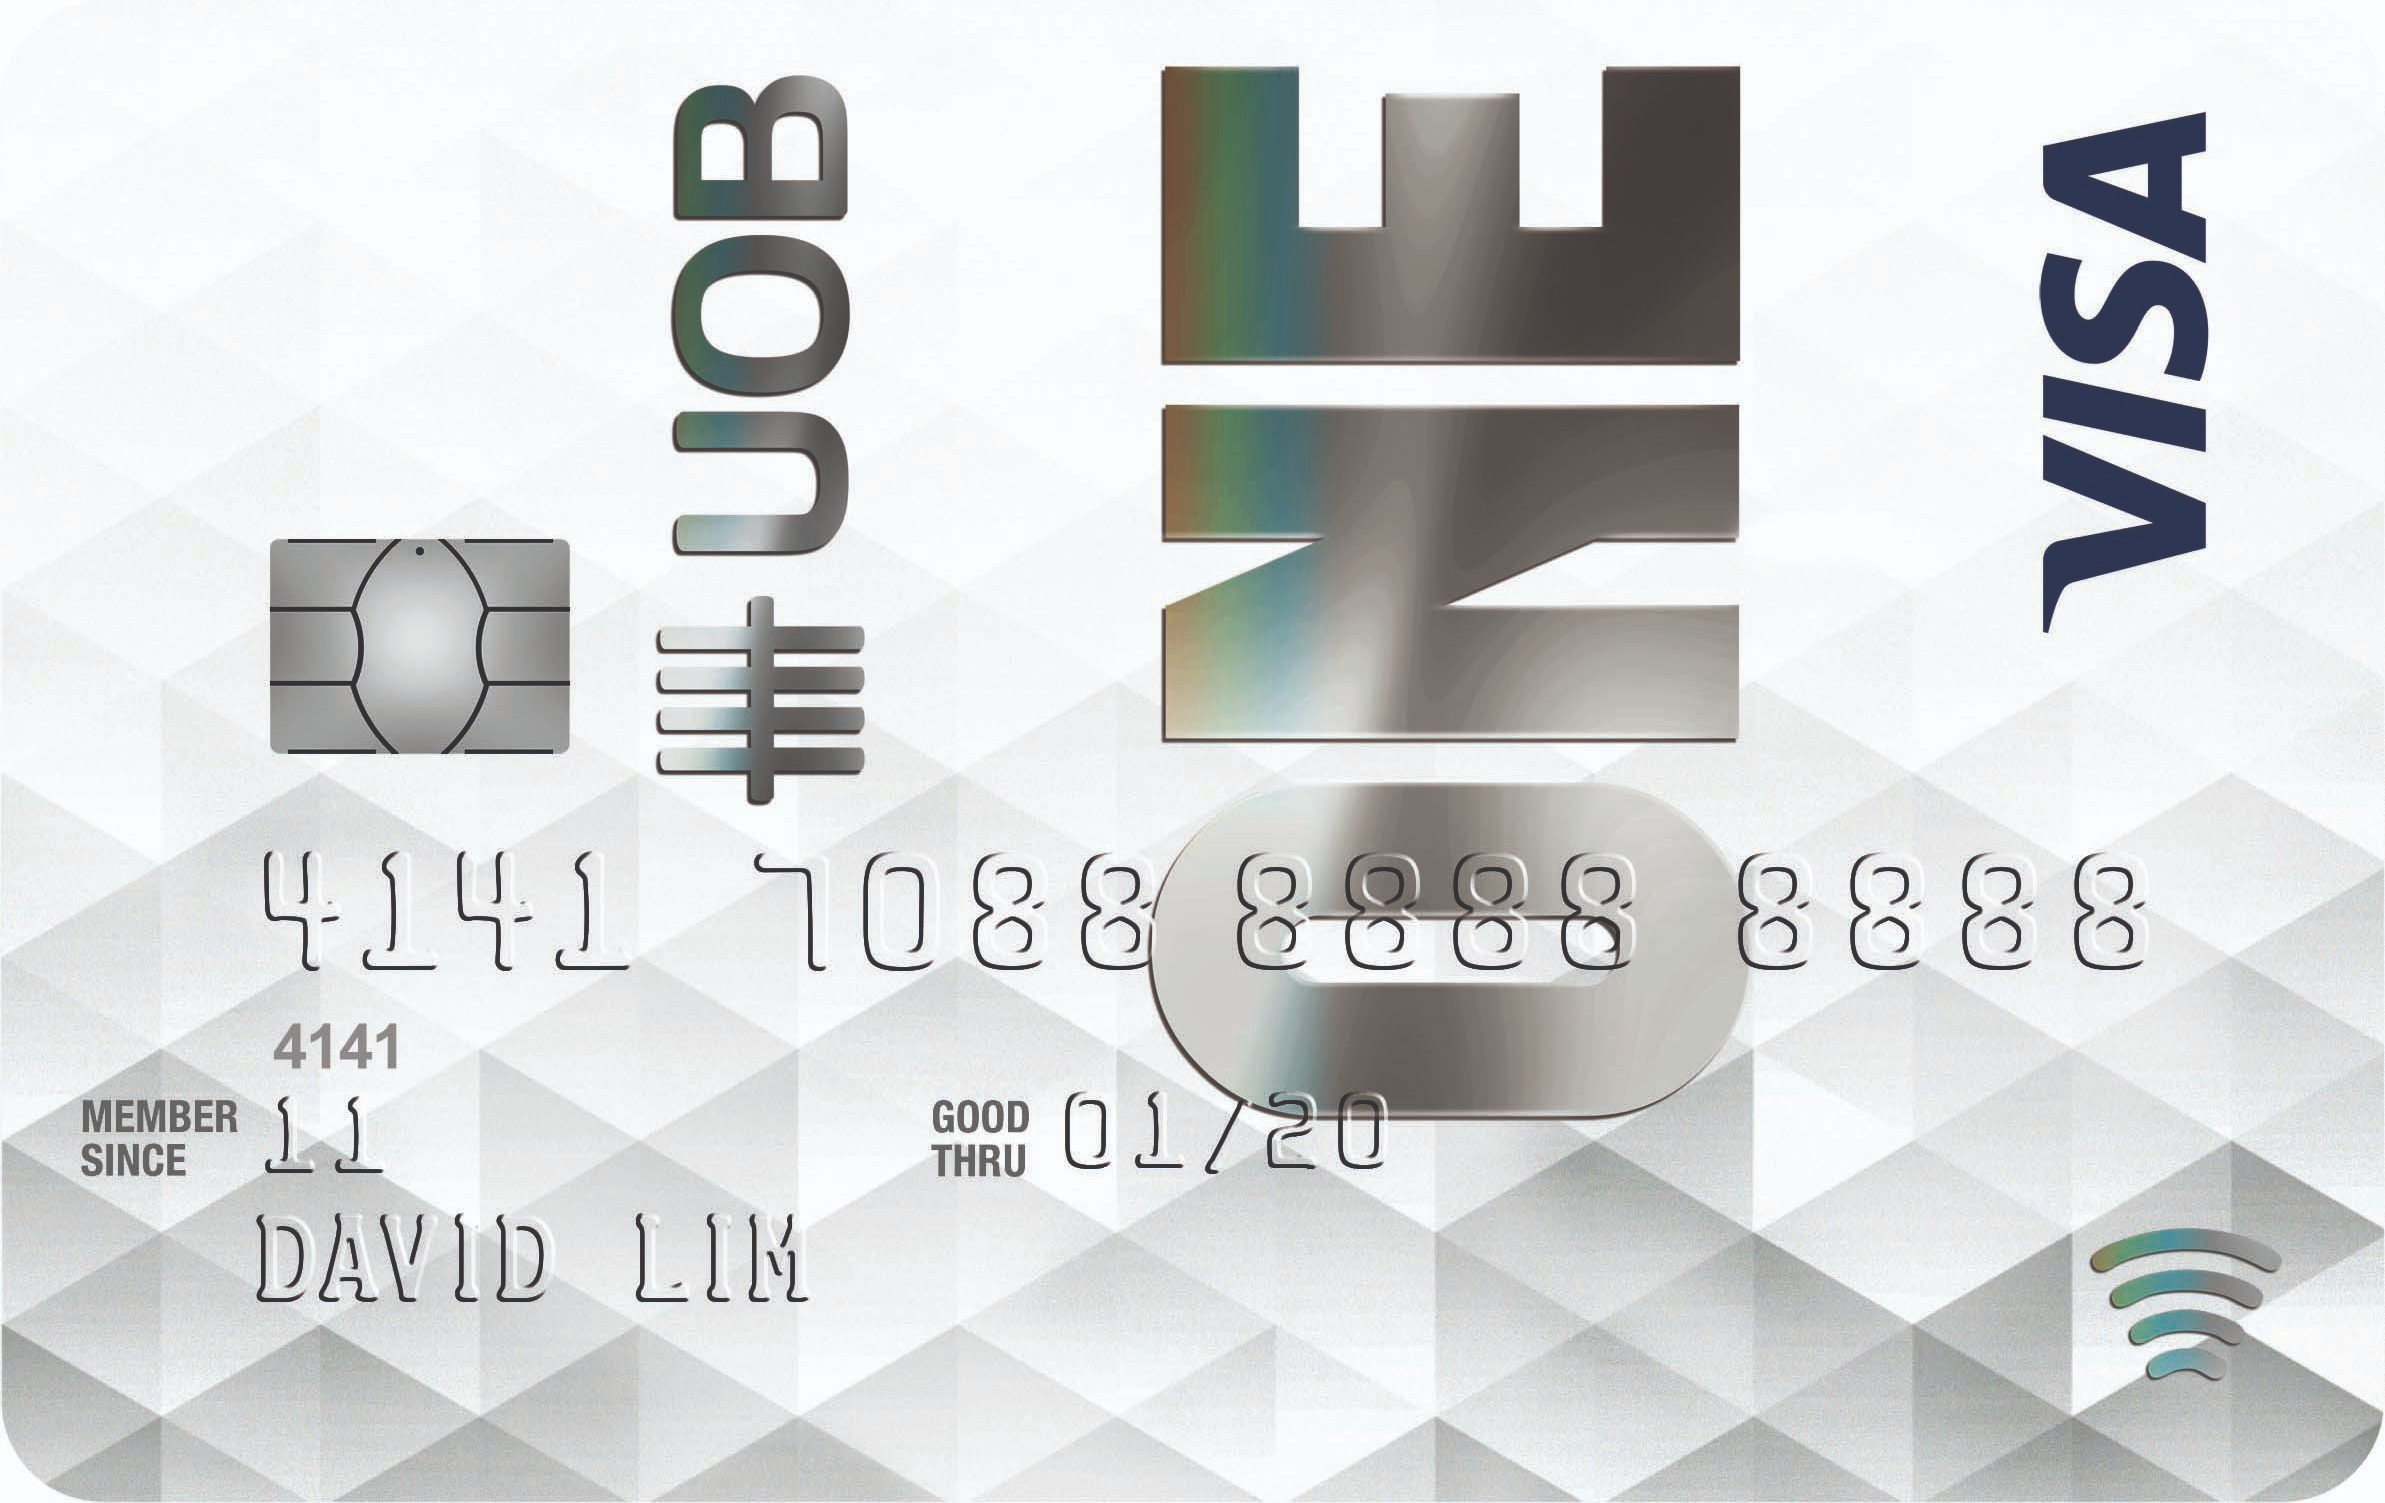 UOB One Classic Card